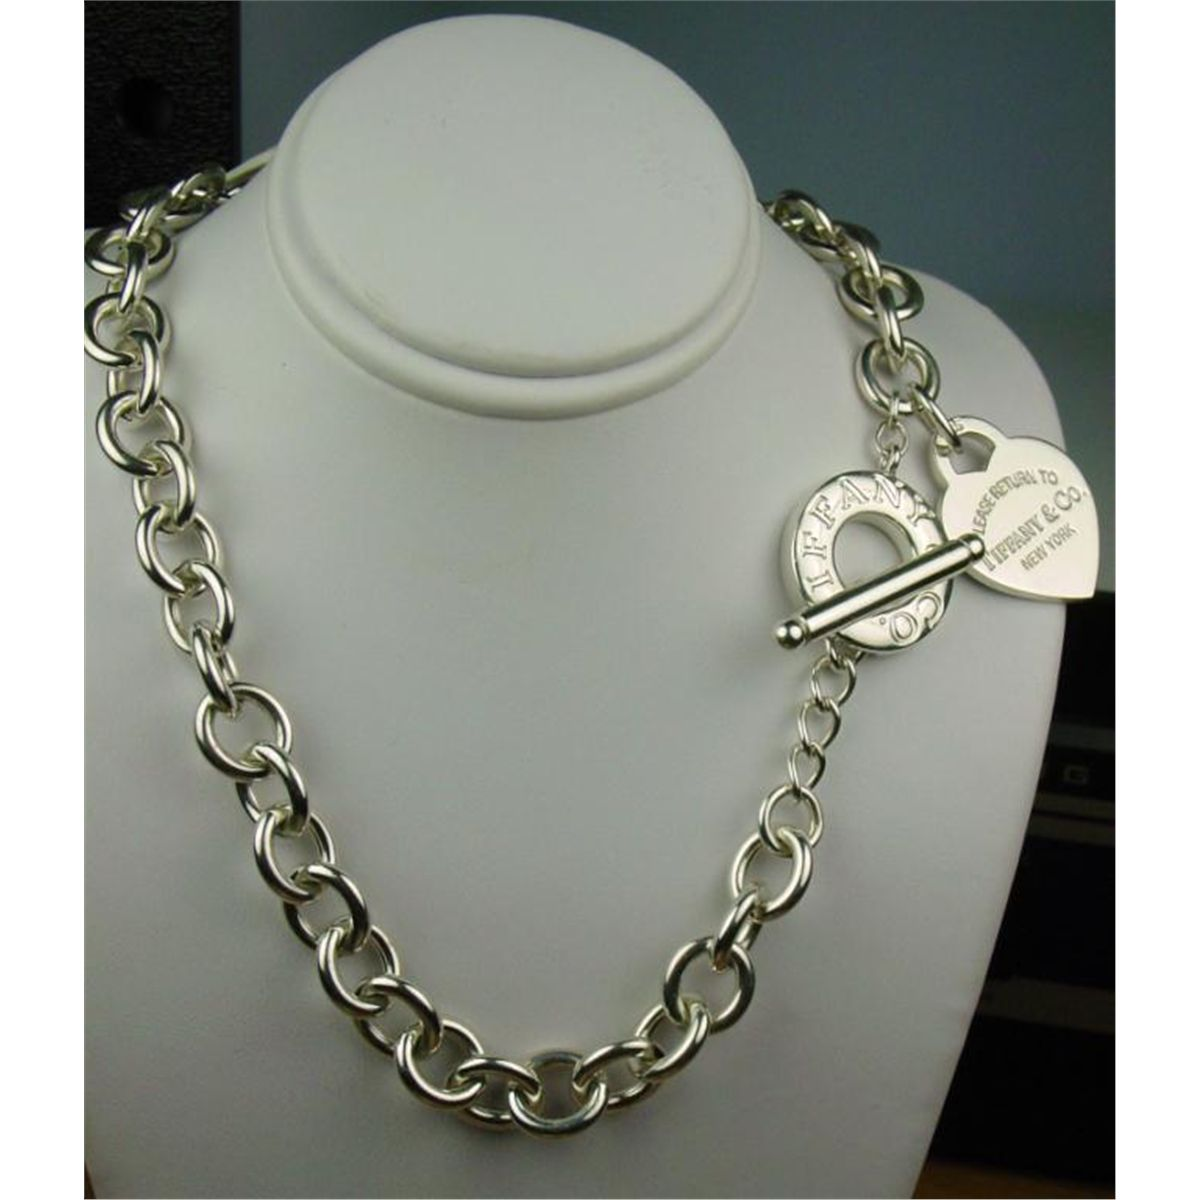 266a88bc4 Loading zoom · Image 1 : Very heavy ladies 'TIFFANY' double wrap design  silver bracelet weighing over ...